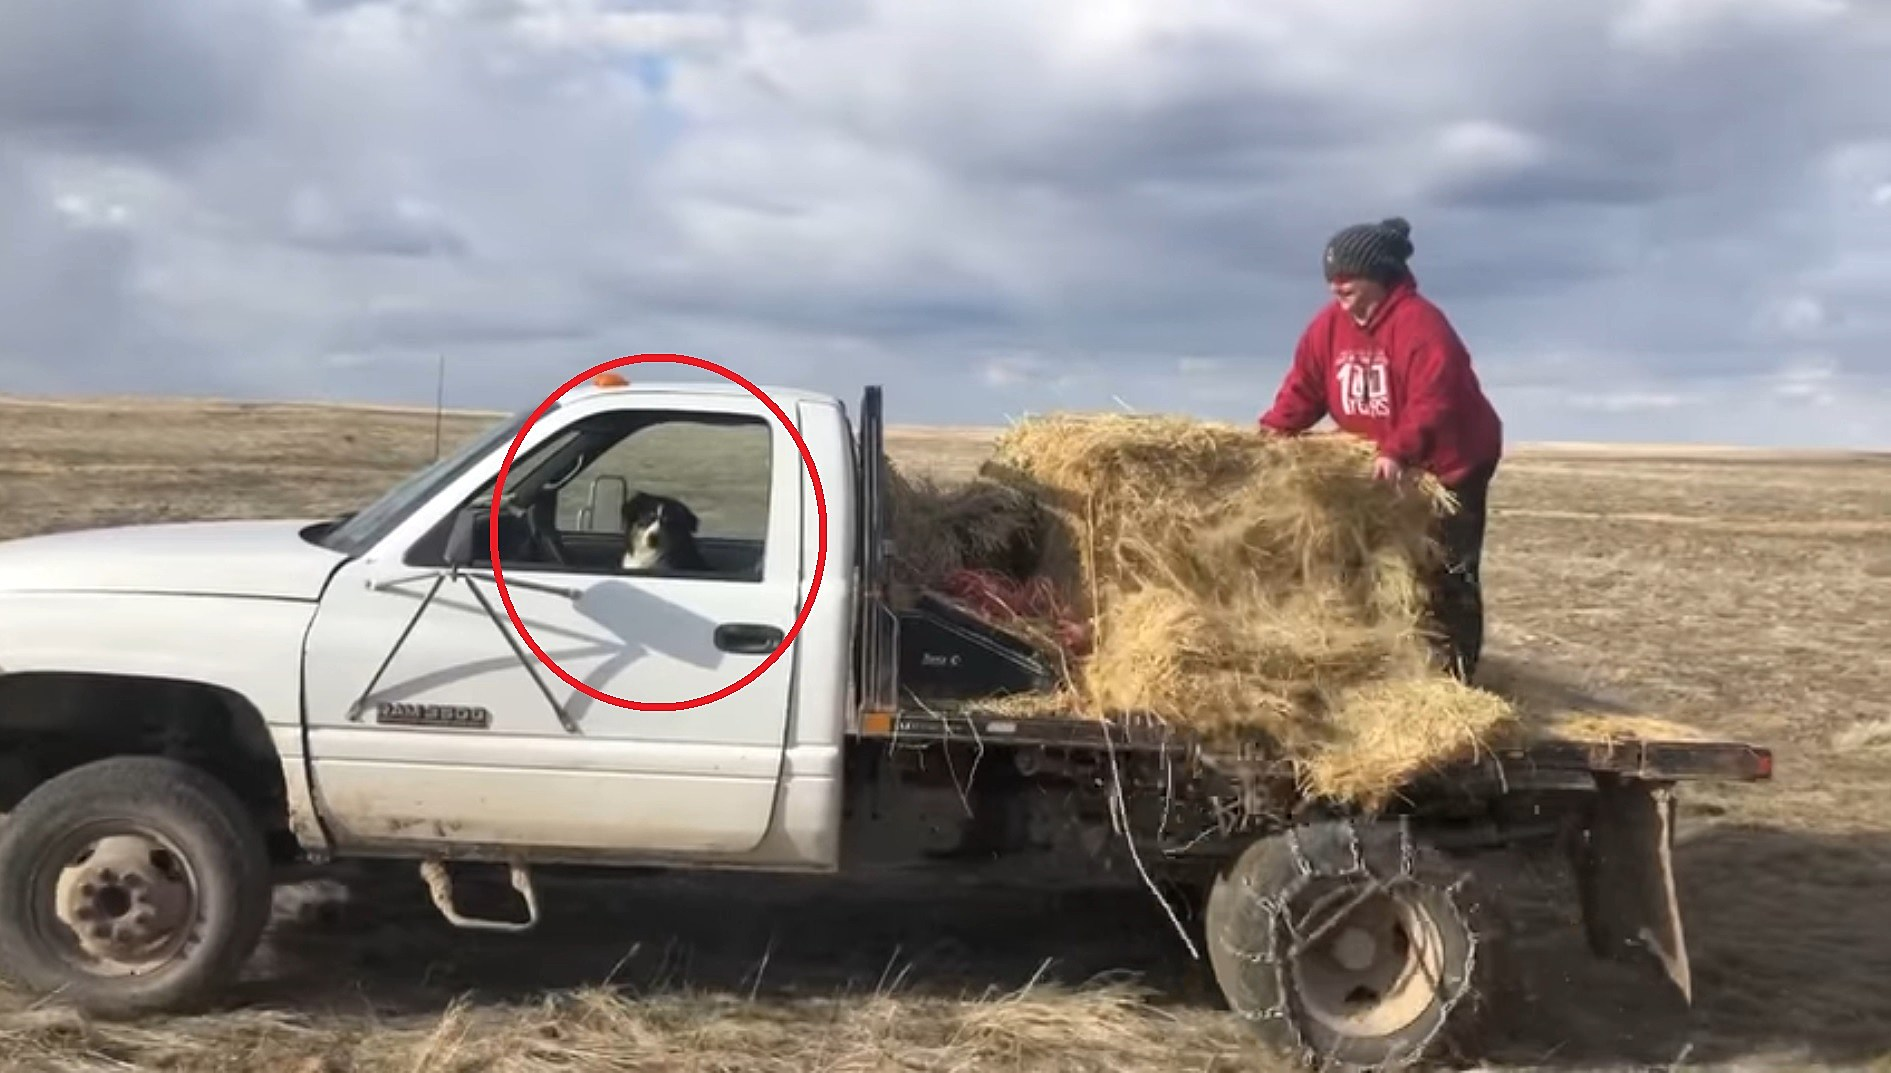 Watch a Wyoming Woman Feed the Cattle While Her Dog Drives